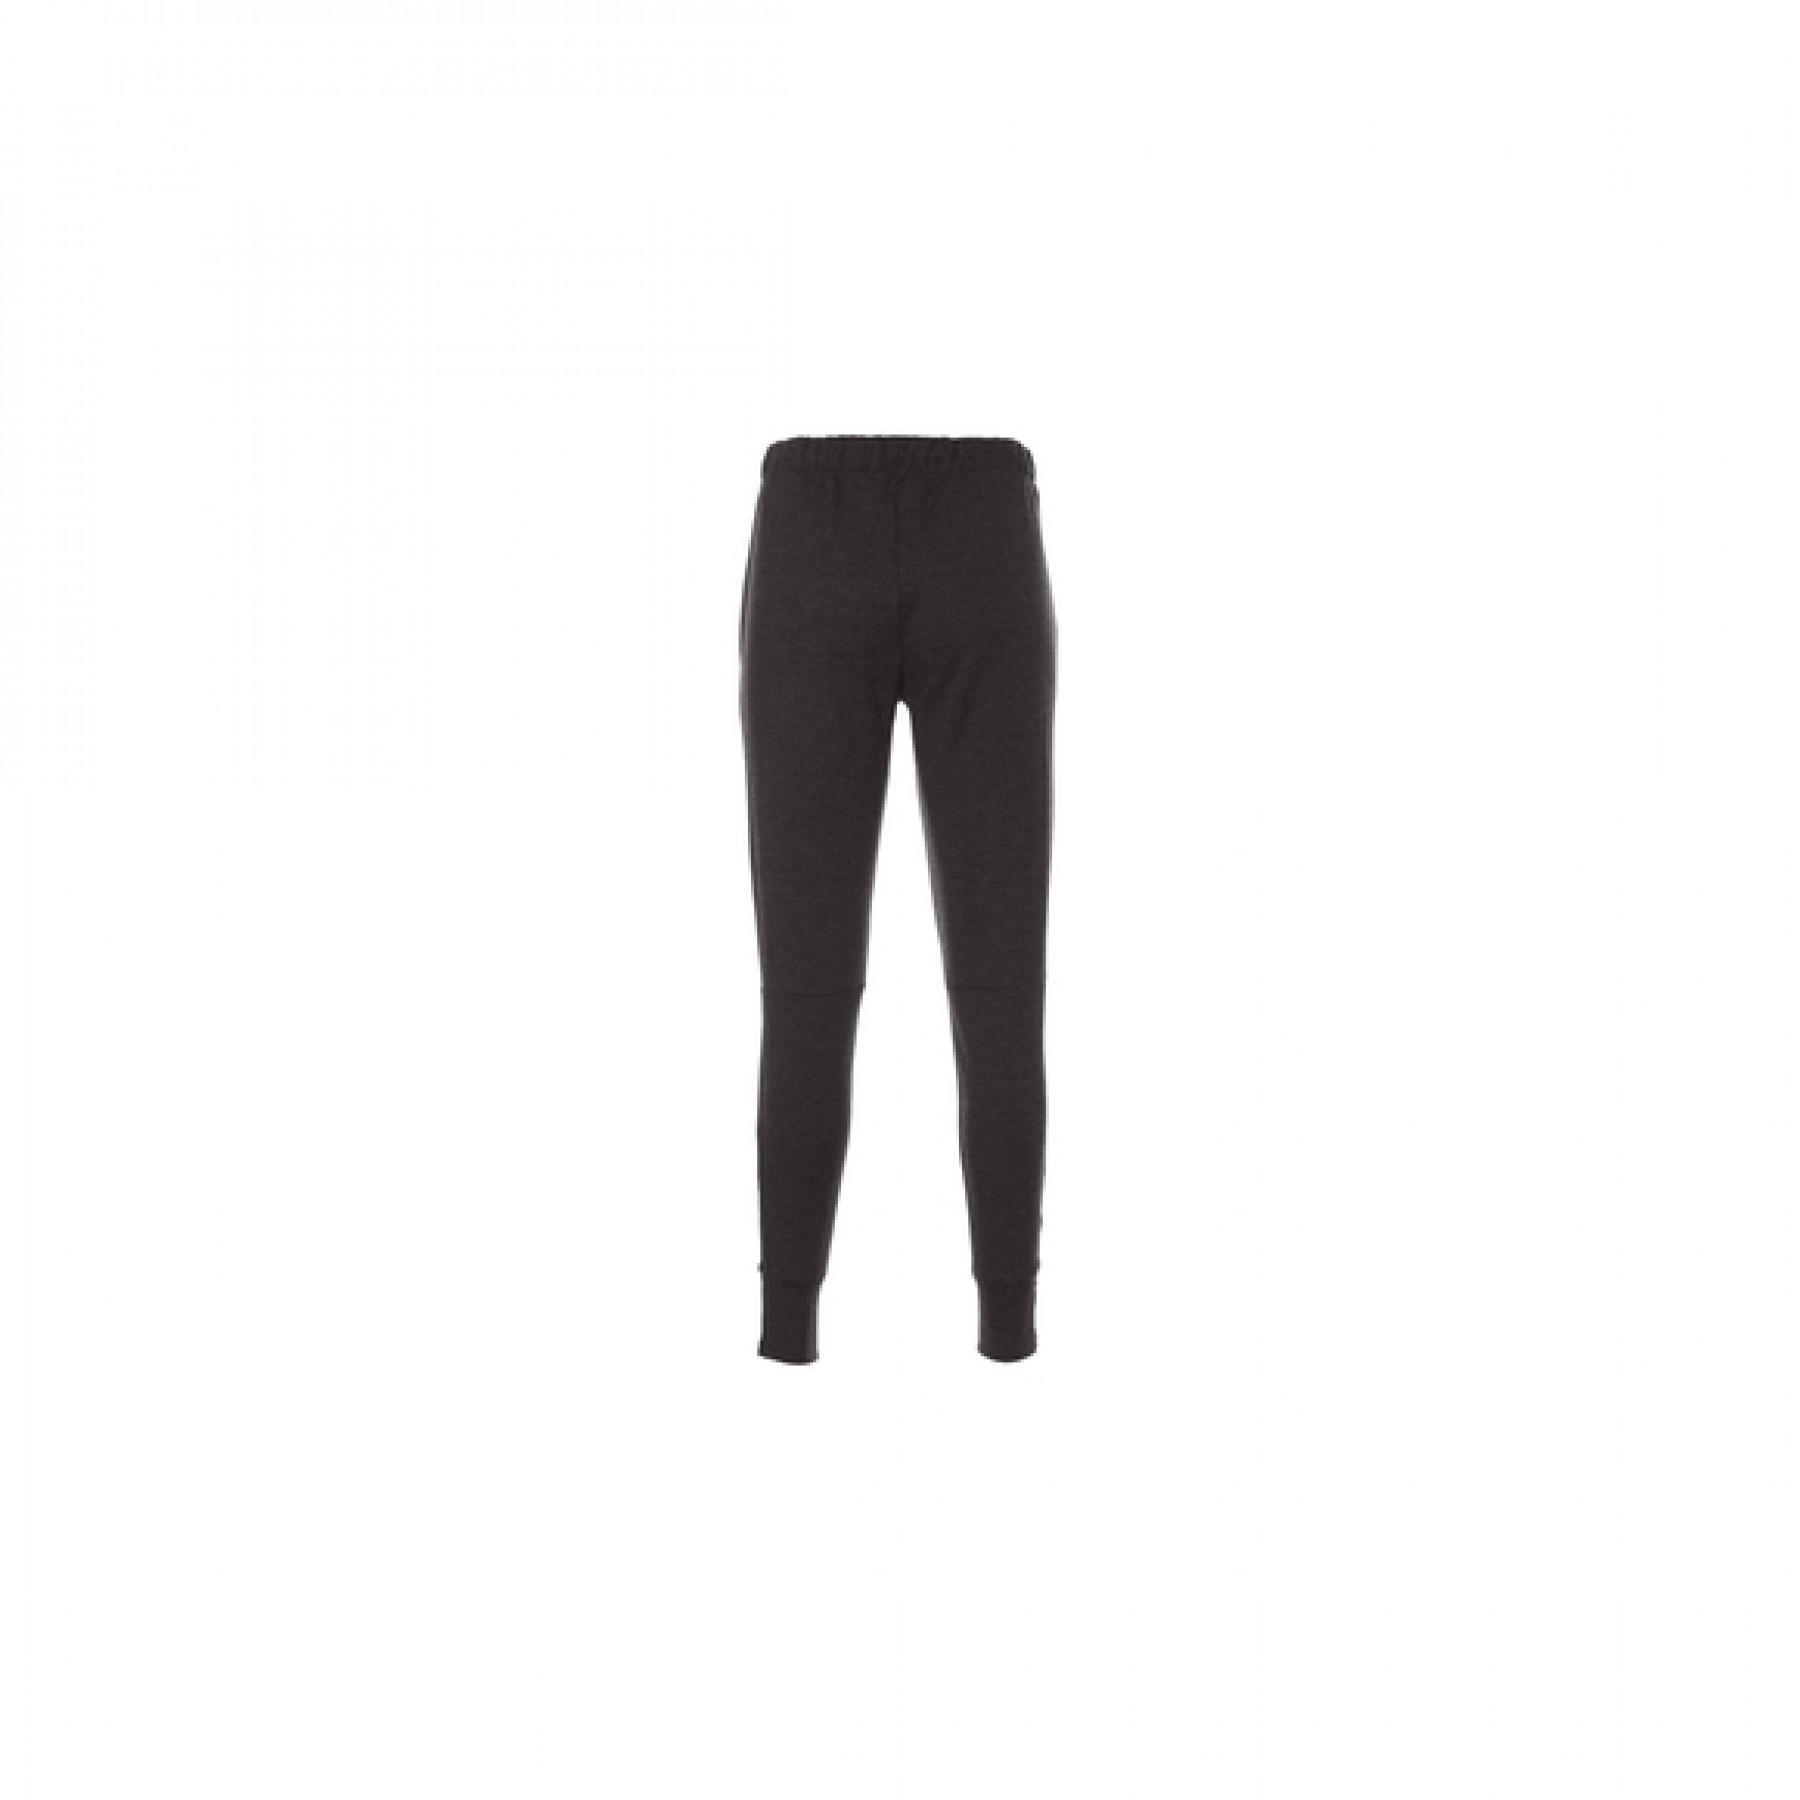 Women's trousers Asics tailored pant